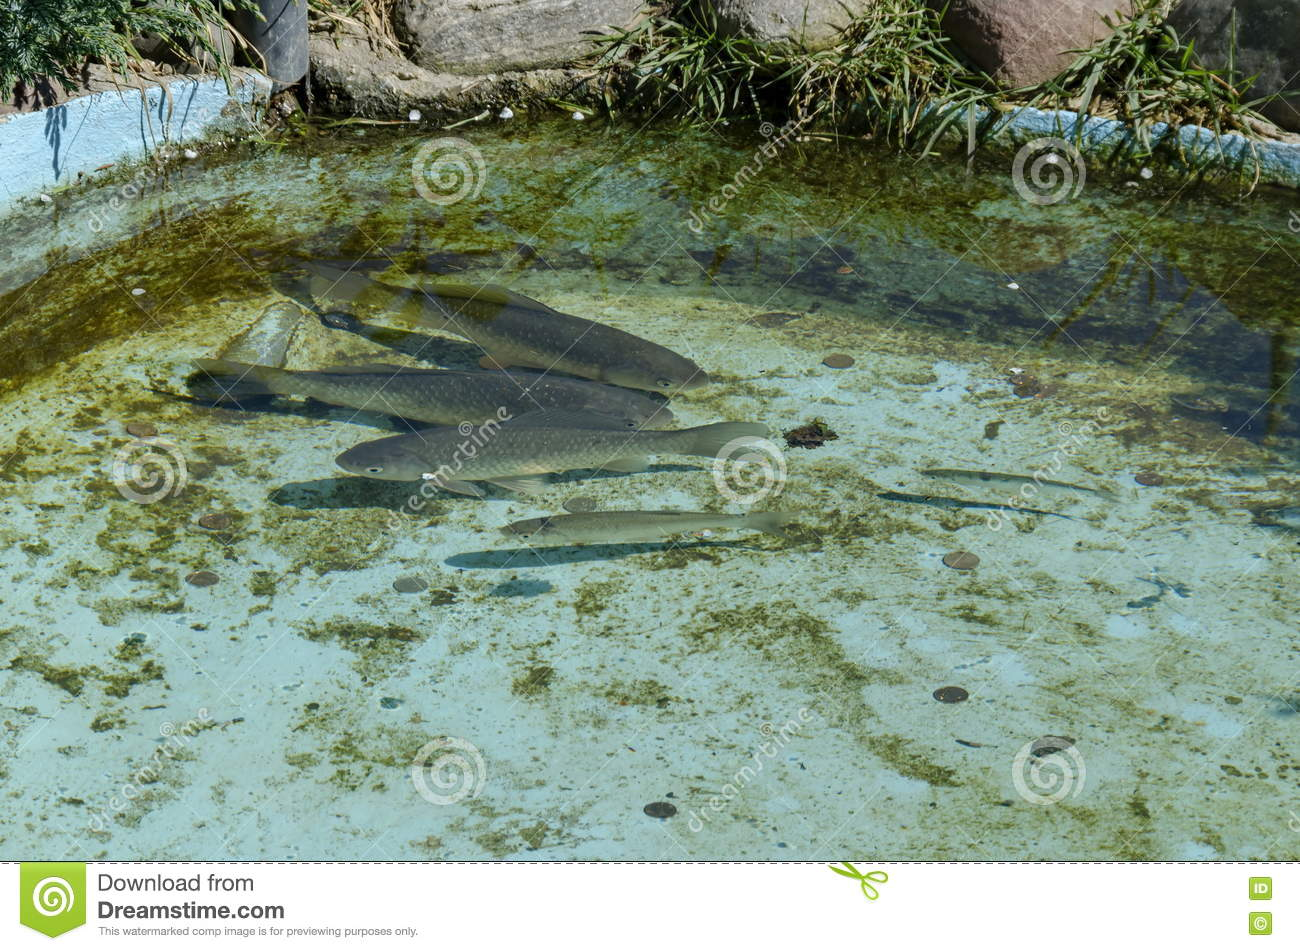 Living fish in aquarium or small lake outdoor stock photo for Small outdoor fish tank